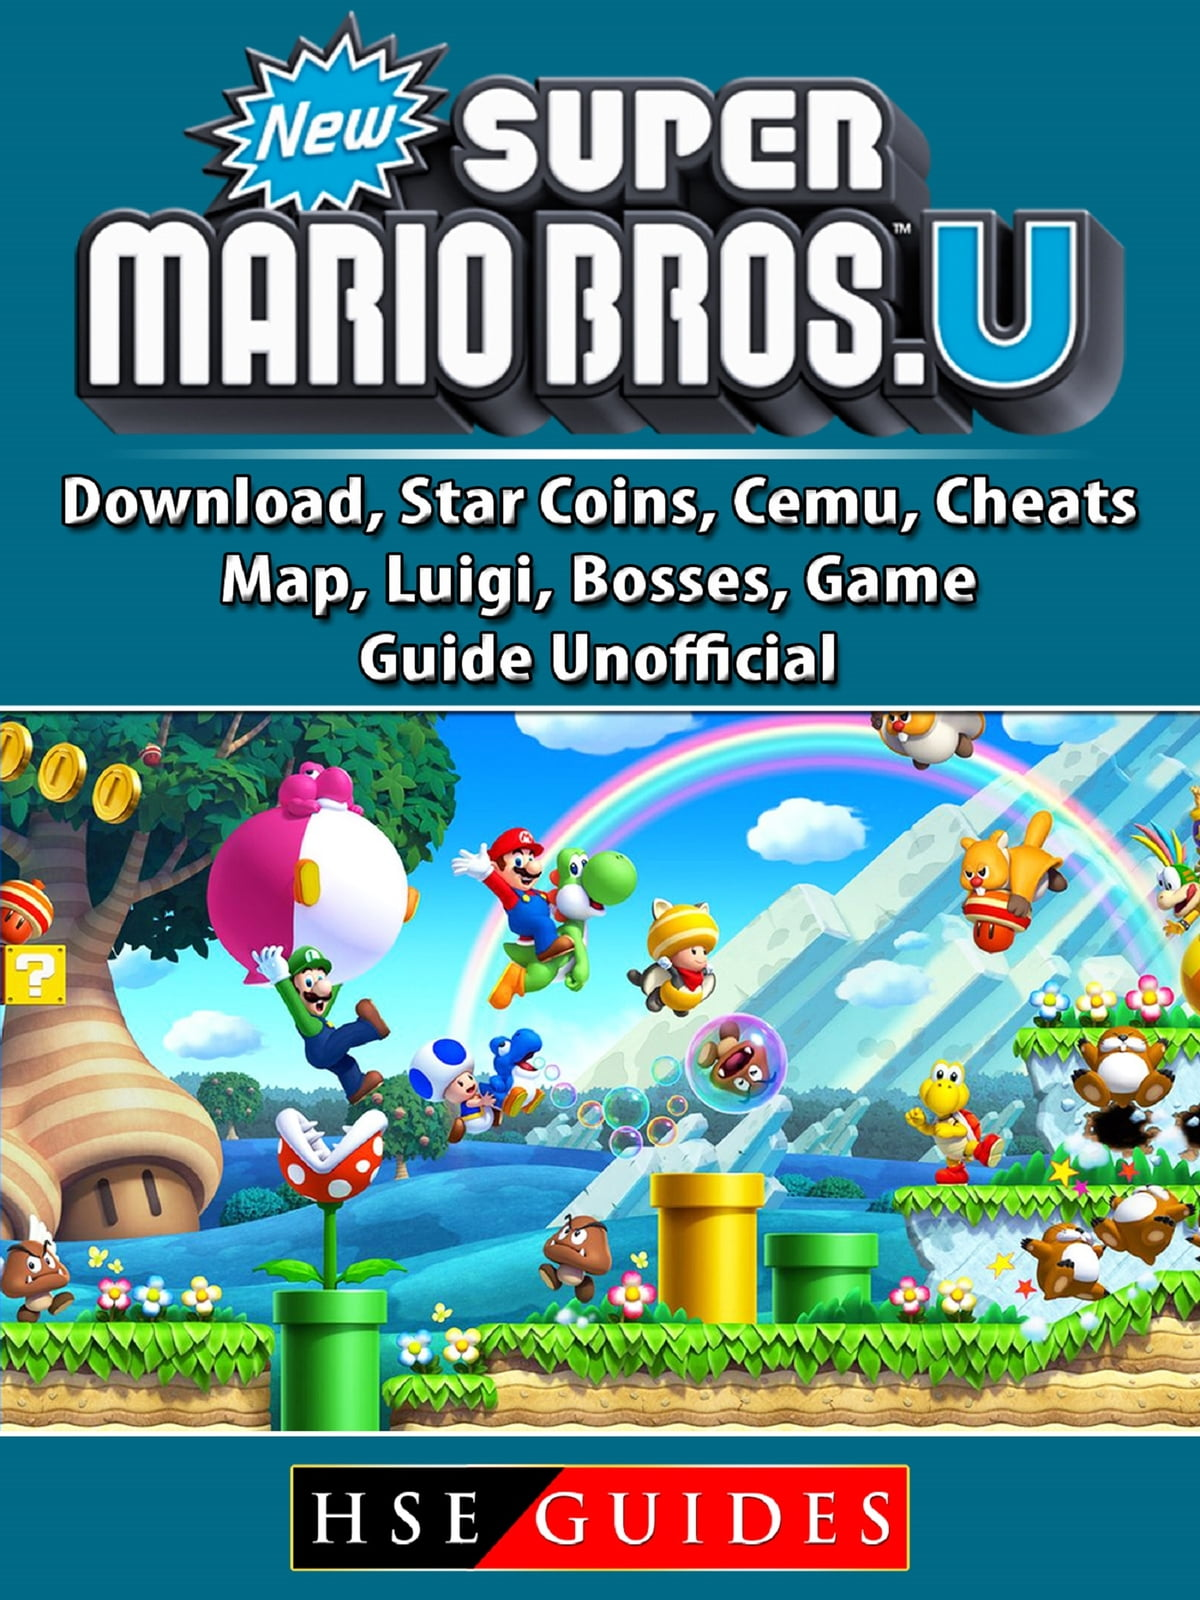 New Super Mario Bros U Download Star Coins Cemu Cheats Map Luigi Bosses Game Guide Unofficial Ebook By Hse